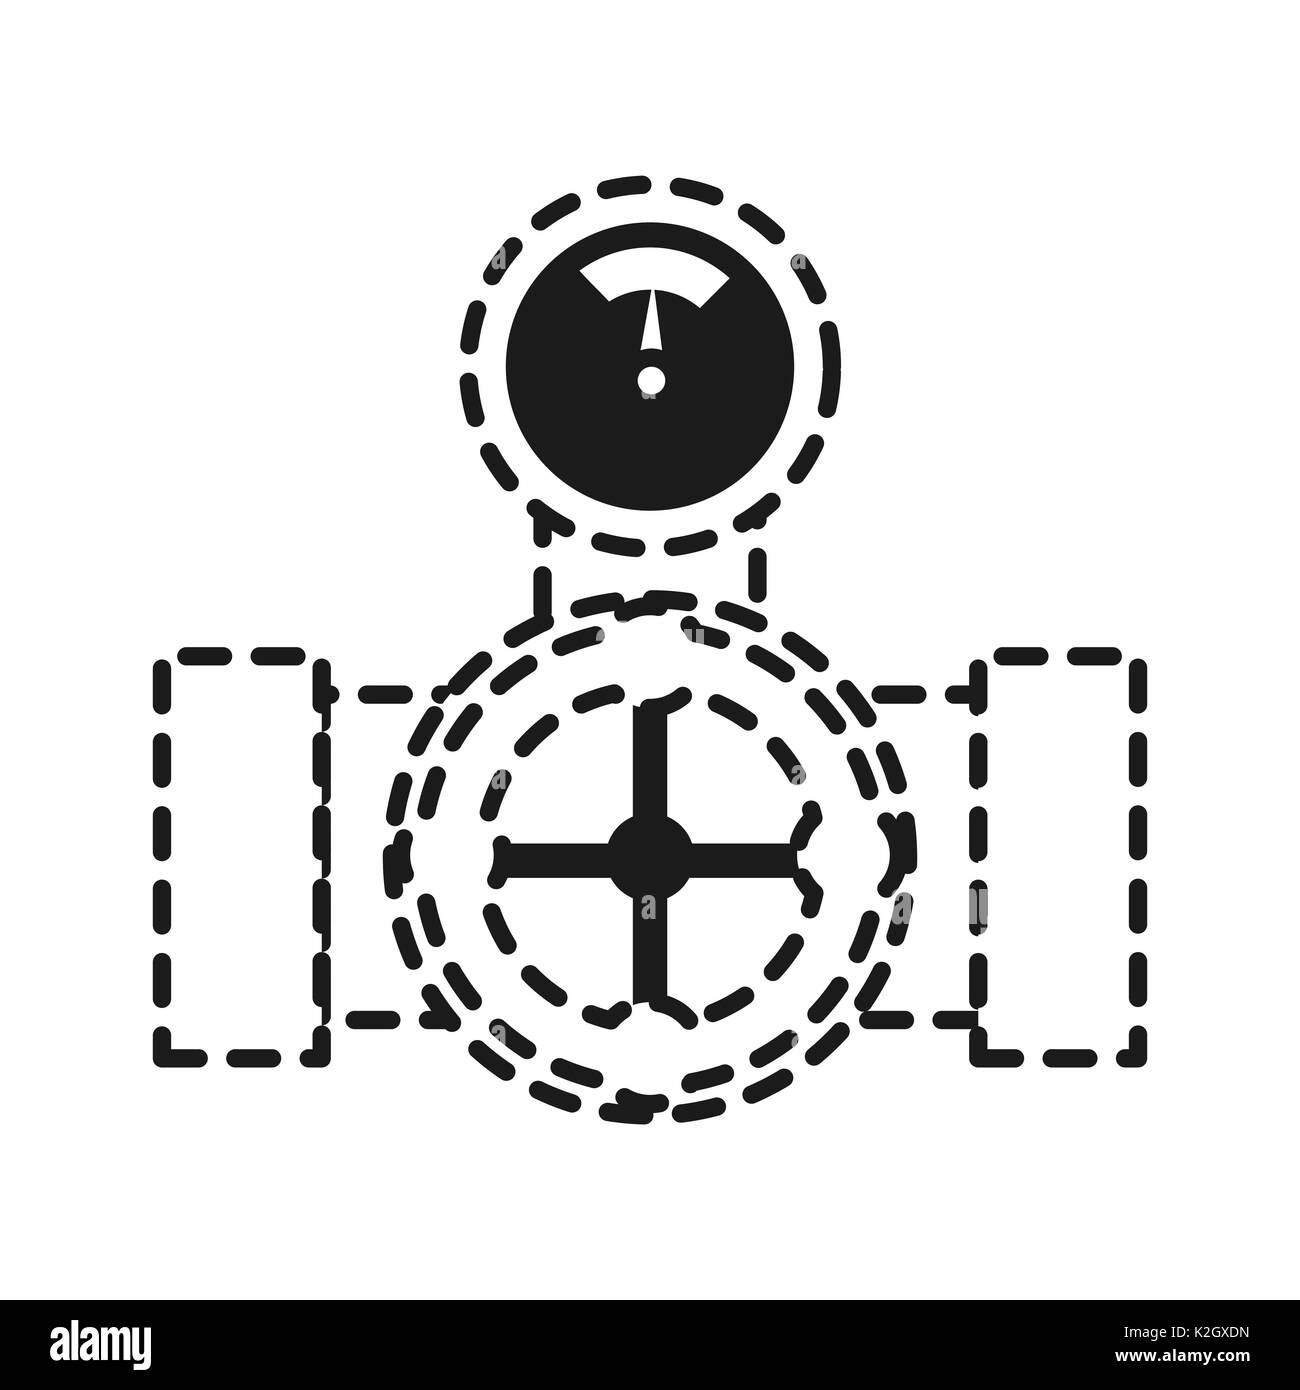 pipe with water meter icon over white background vector illustration - Stock Image